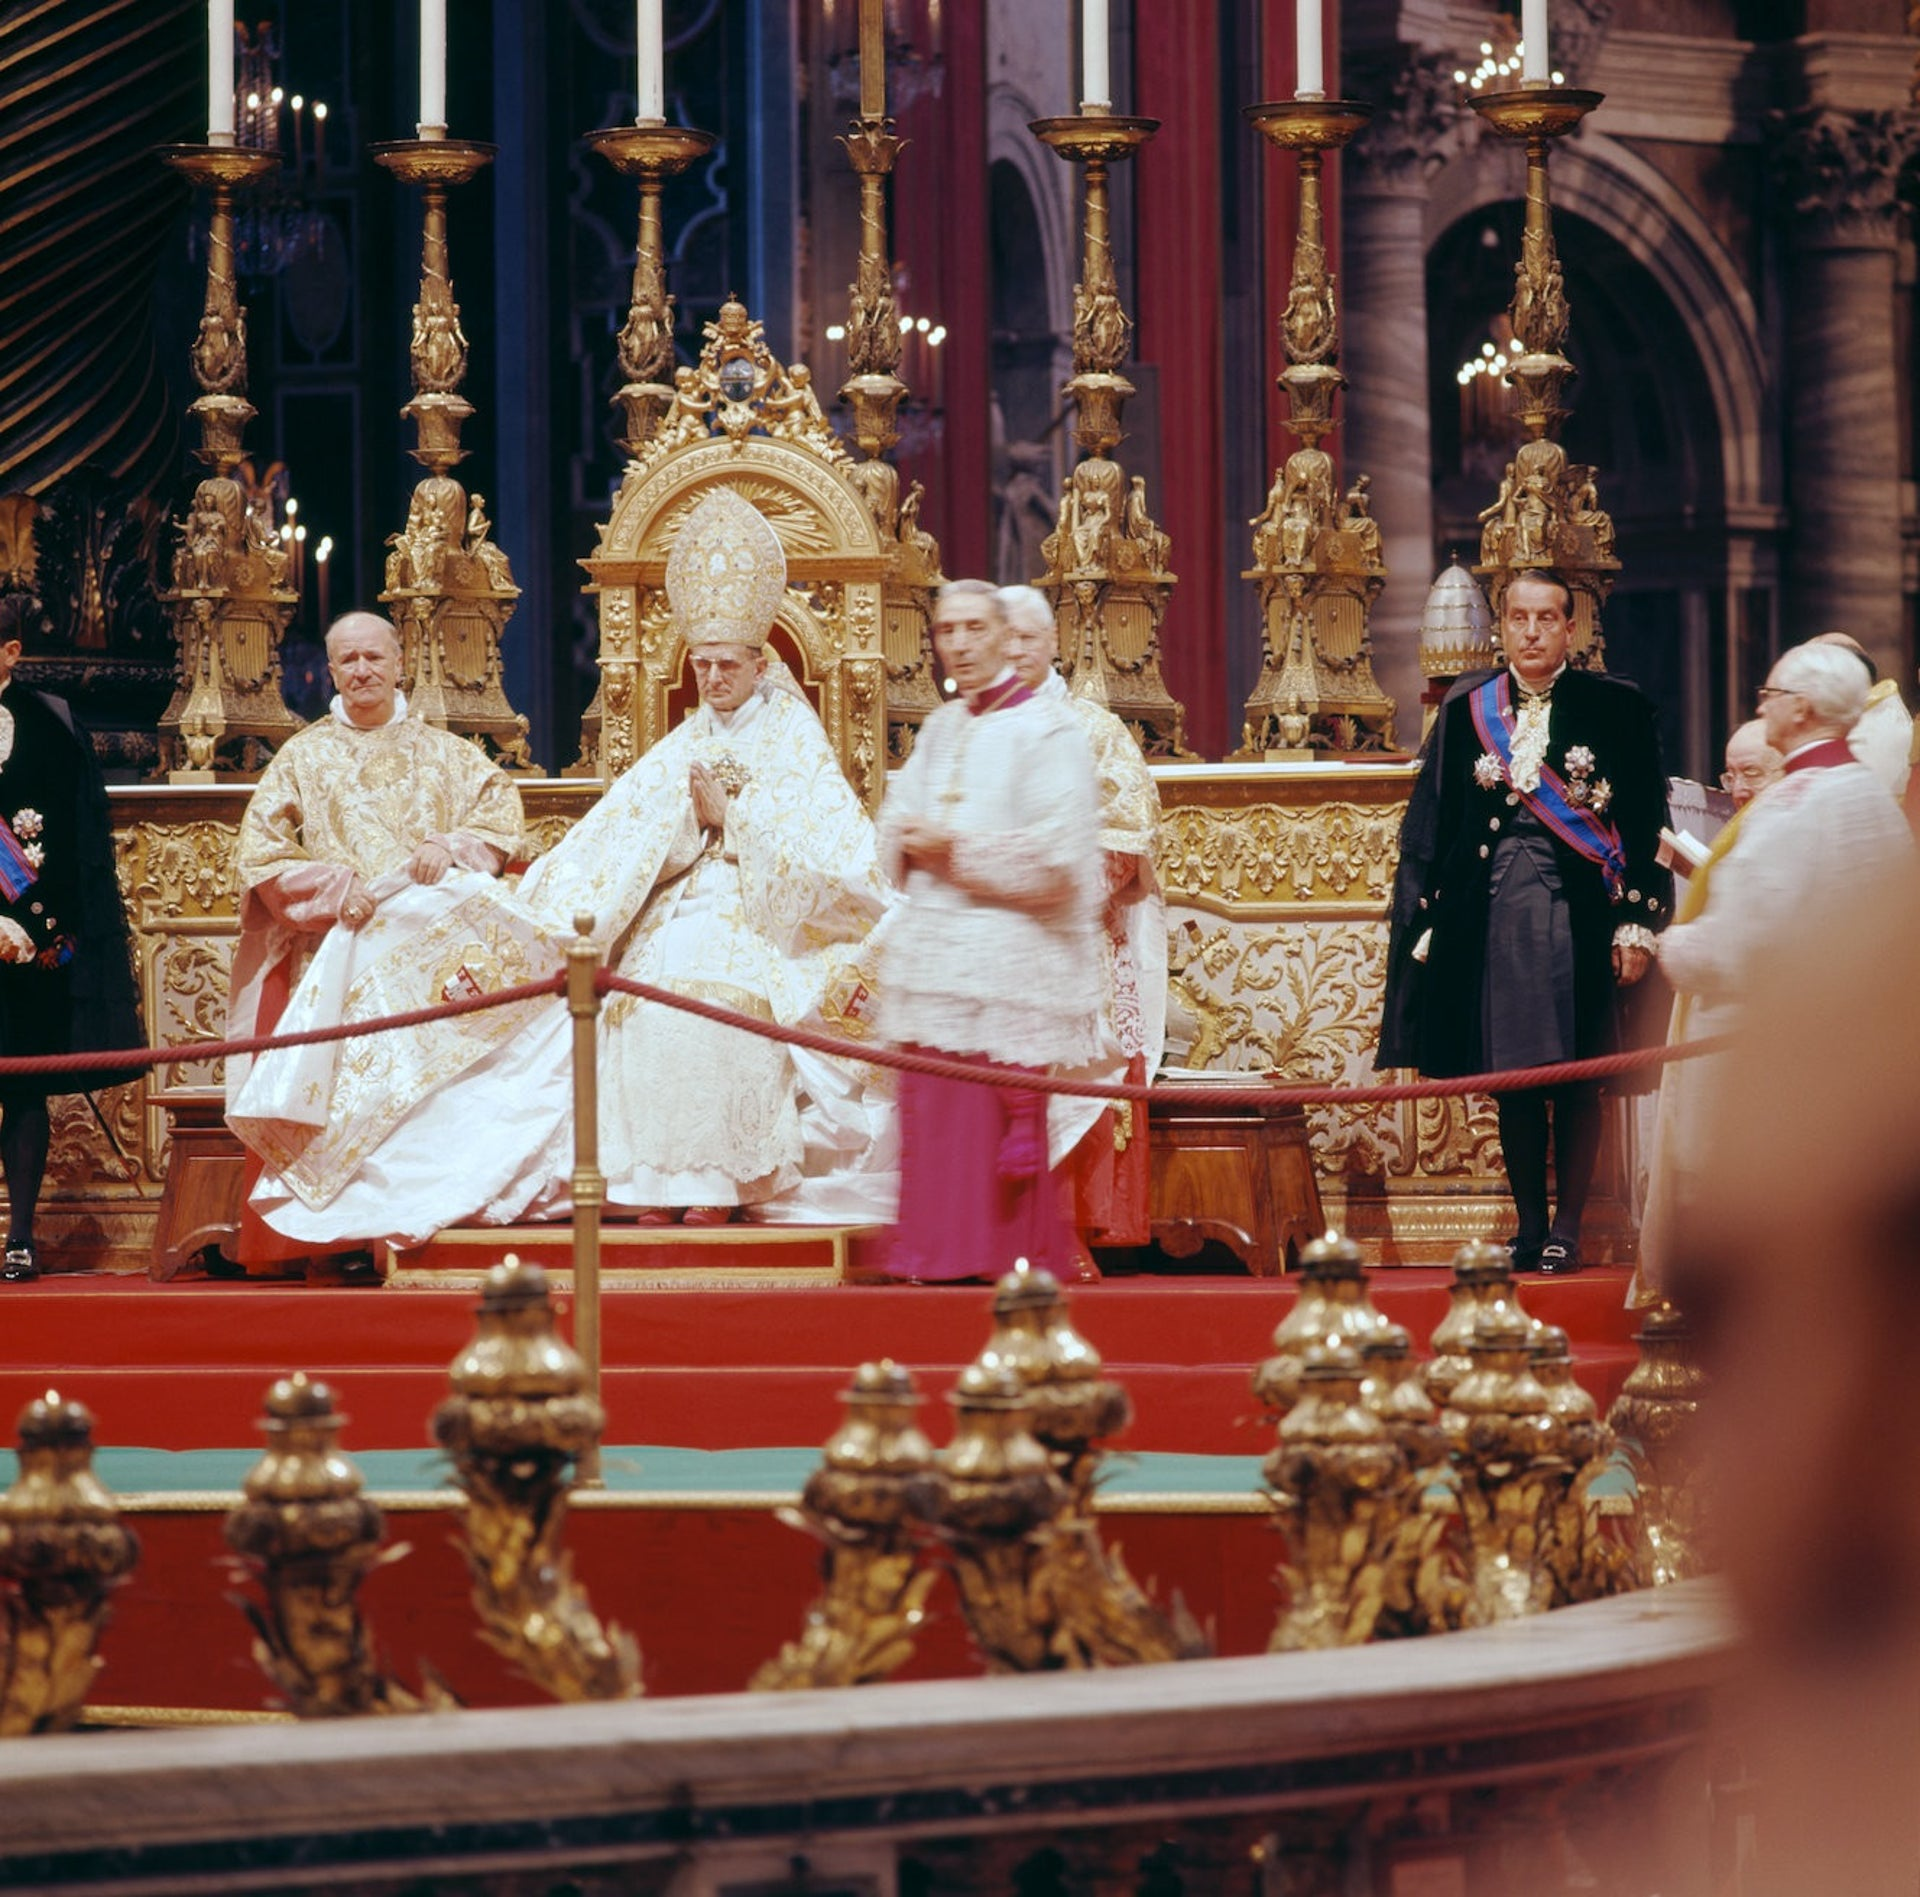 Pope Paul VI during the Second Vatican Council.